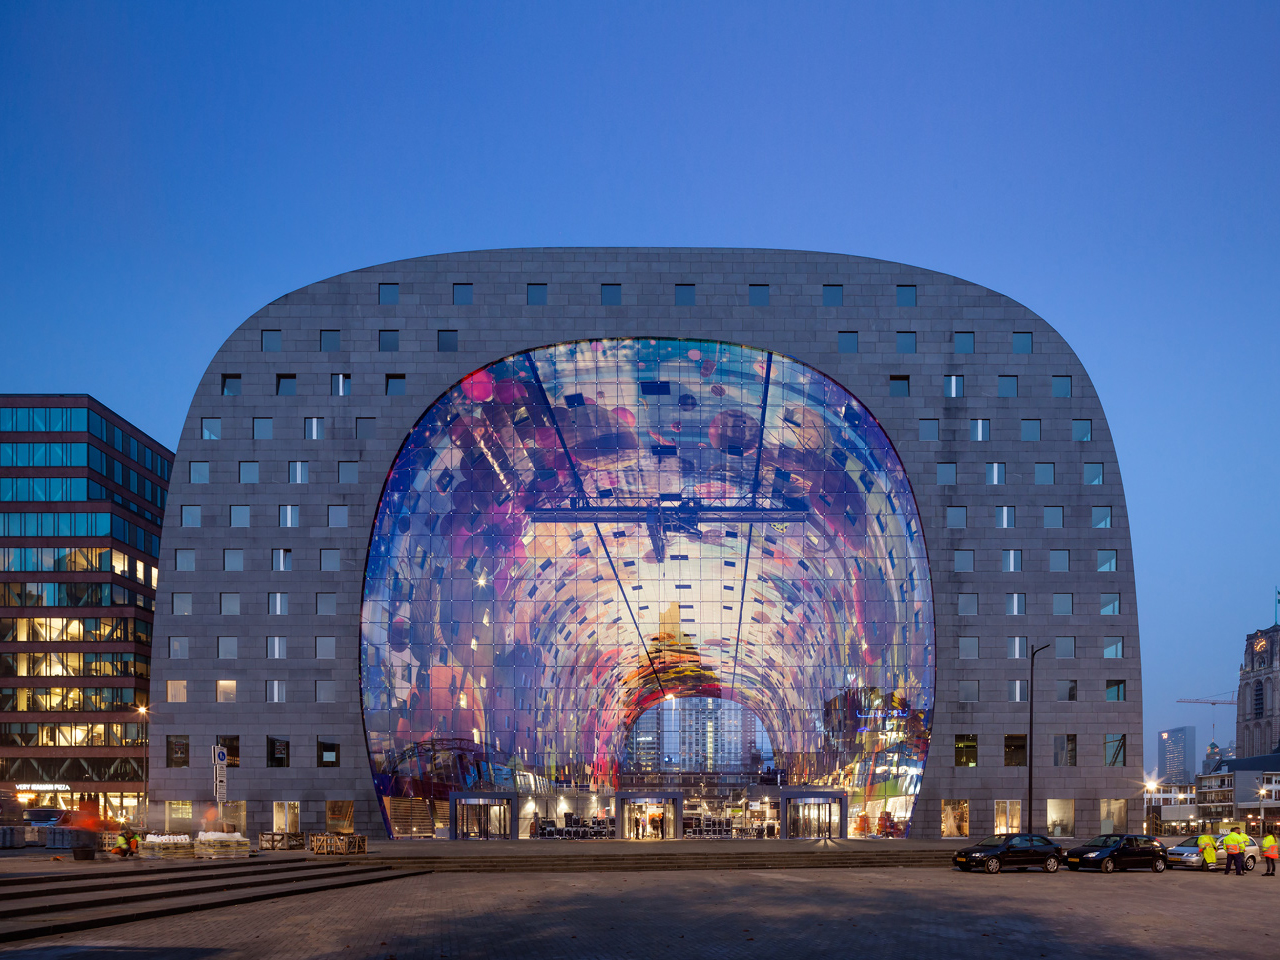 Markthal wins the World Architecture News (WAN) Mixed-Use Award 2014